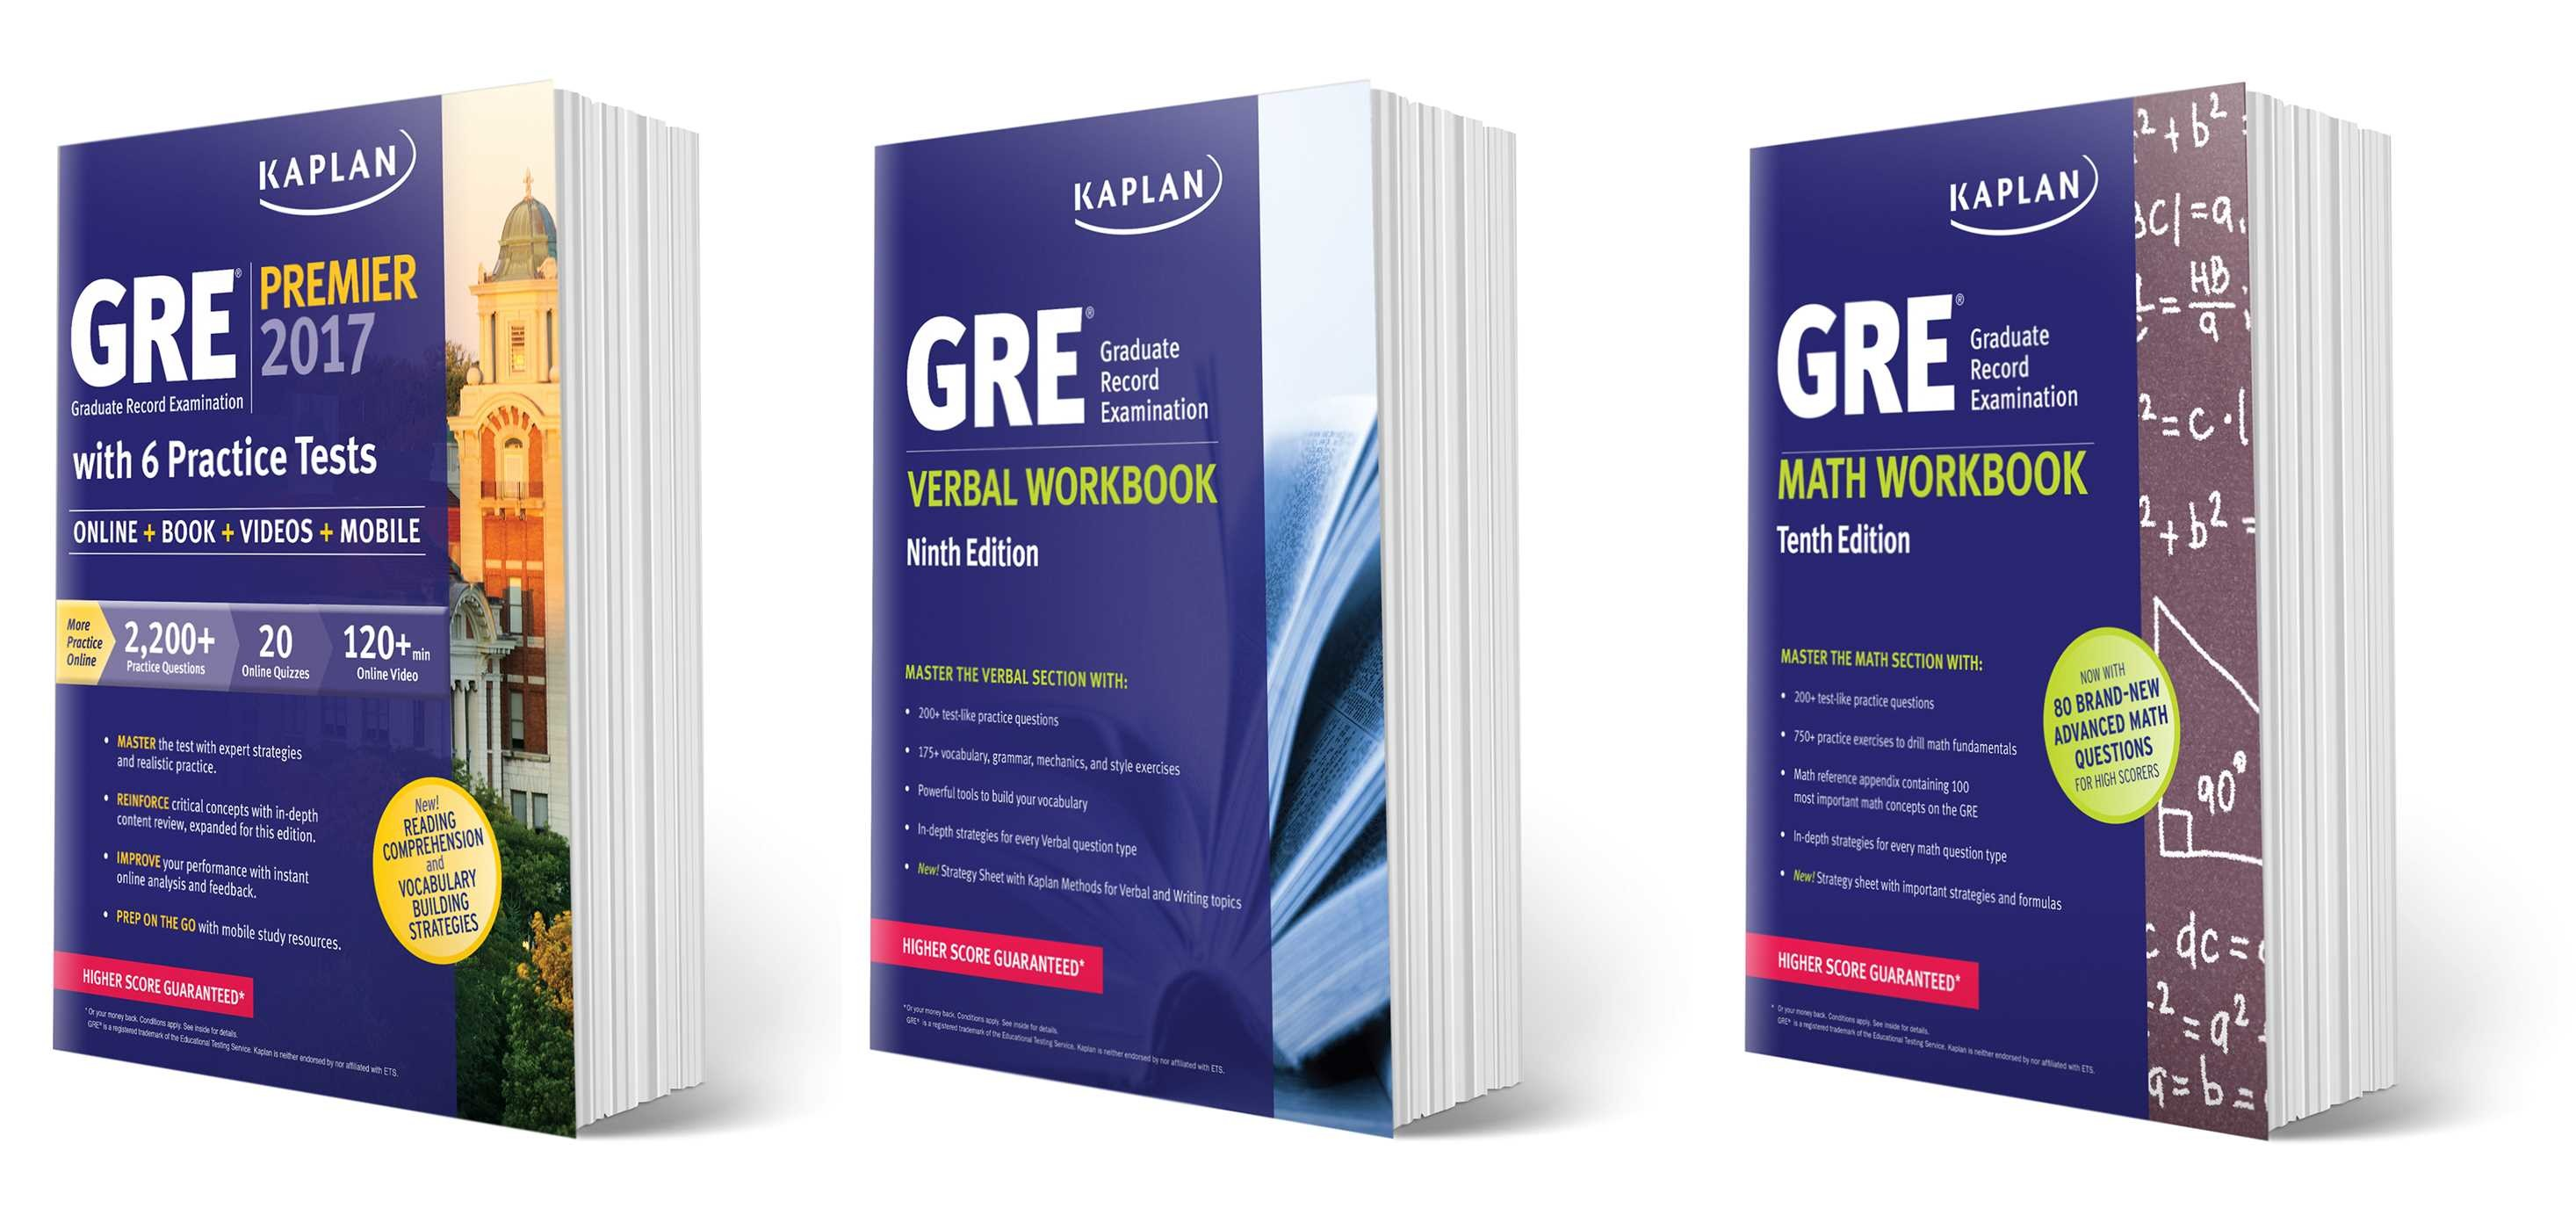 kaplan gre recommended essay style The gre consists of a 60-minute analytical writing section - with two essays at 30 minutes each there is a verbal reasoning section, also with two 30-minute parts there are two 35-minute quantitative reasonsing sections.